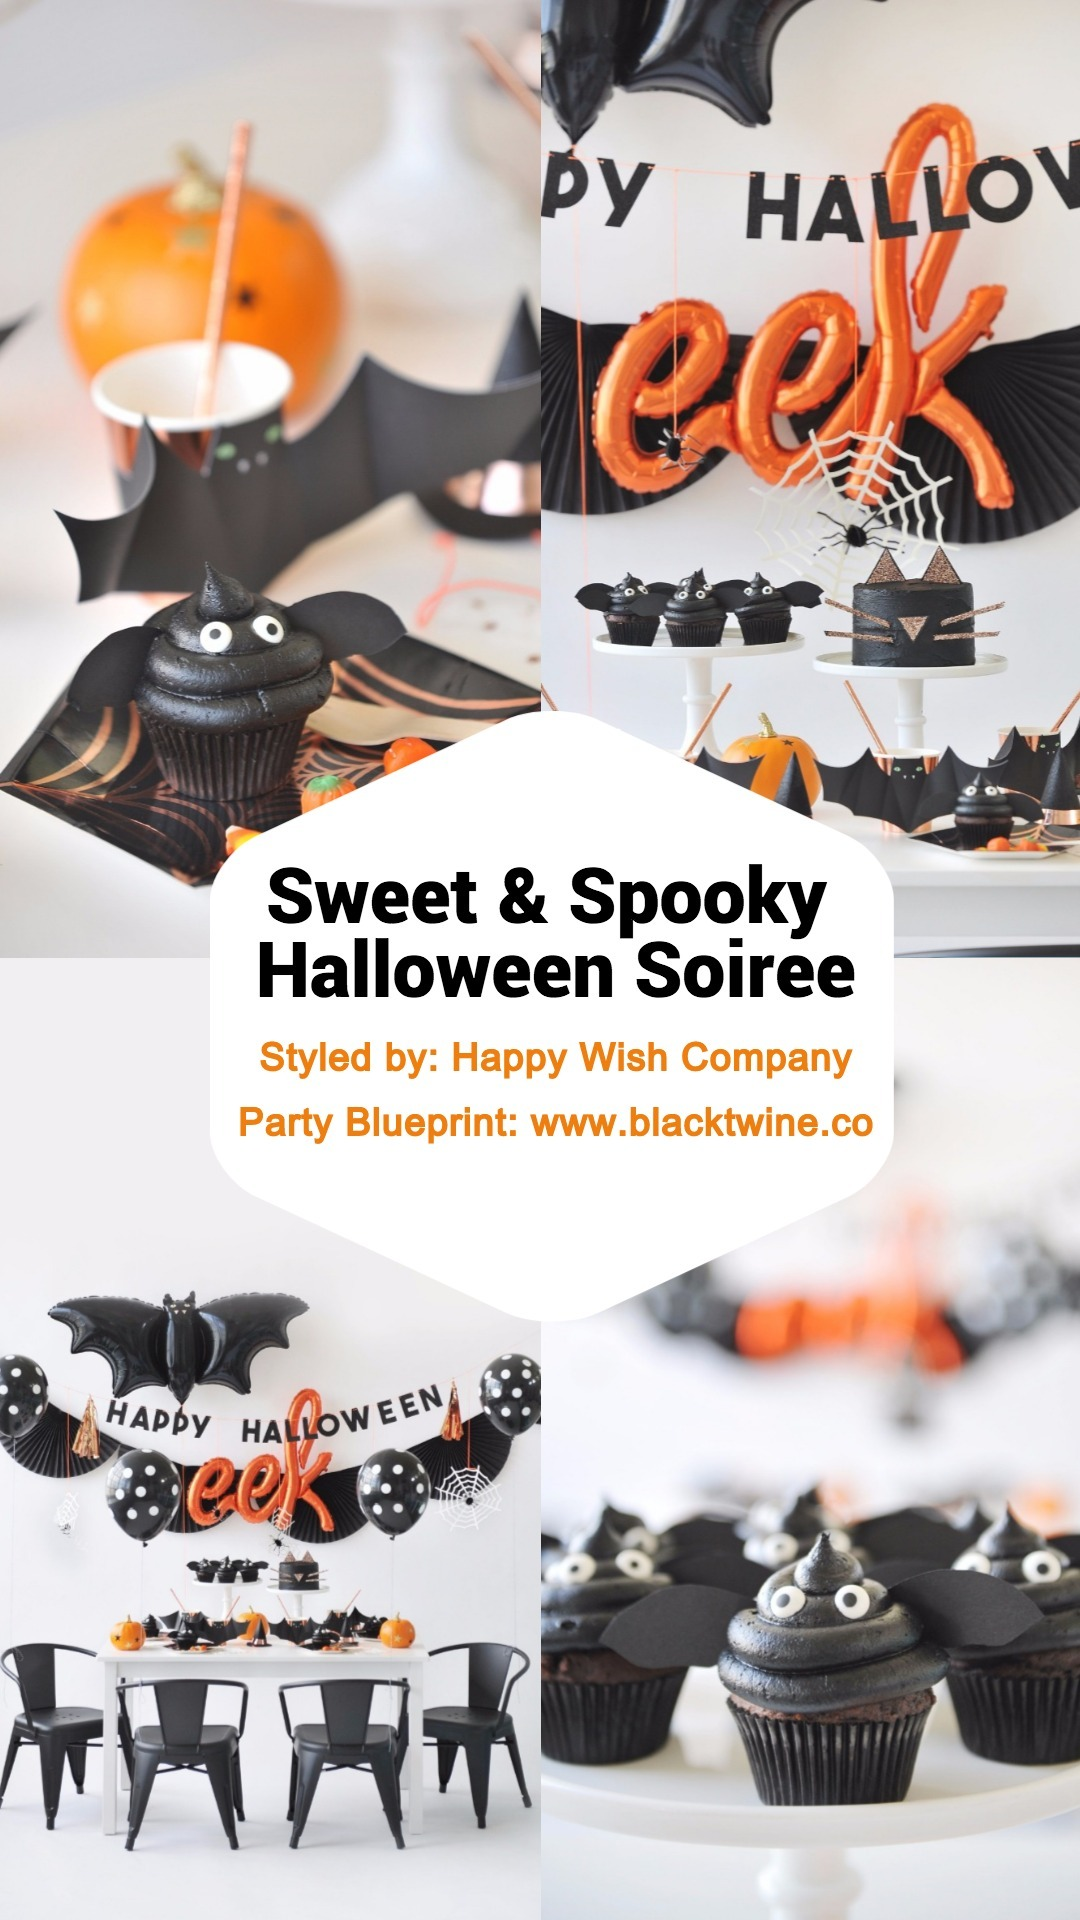 Sweet & Spooky Halloween Soiree Party by Happy Wish Company | Black Twine